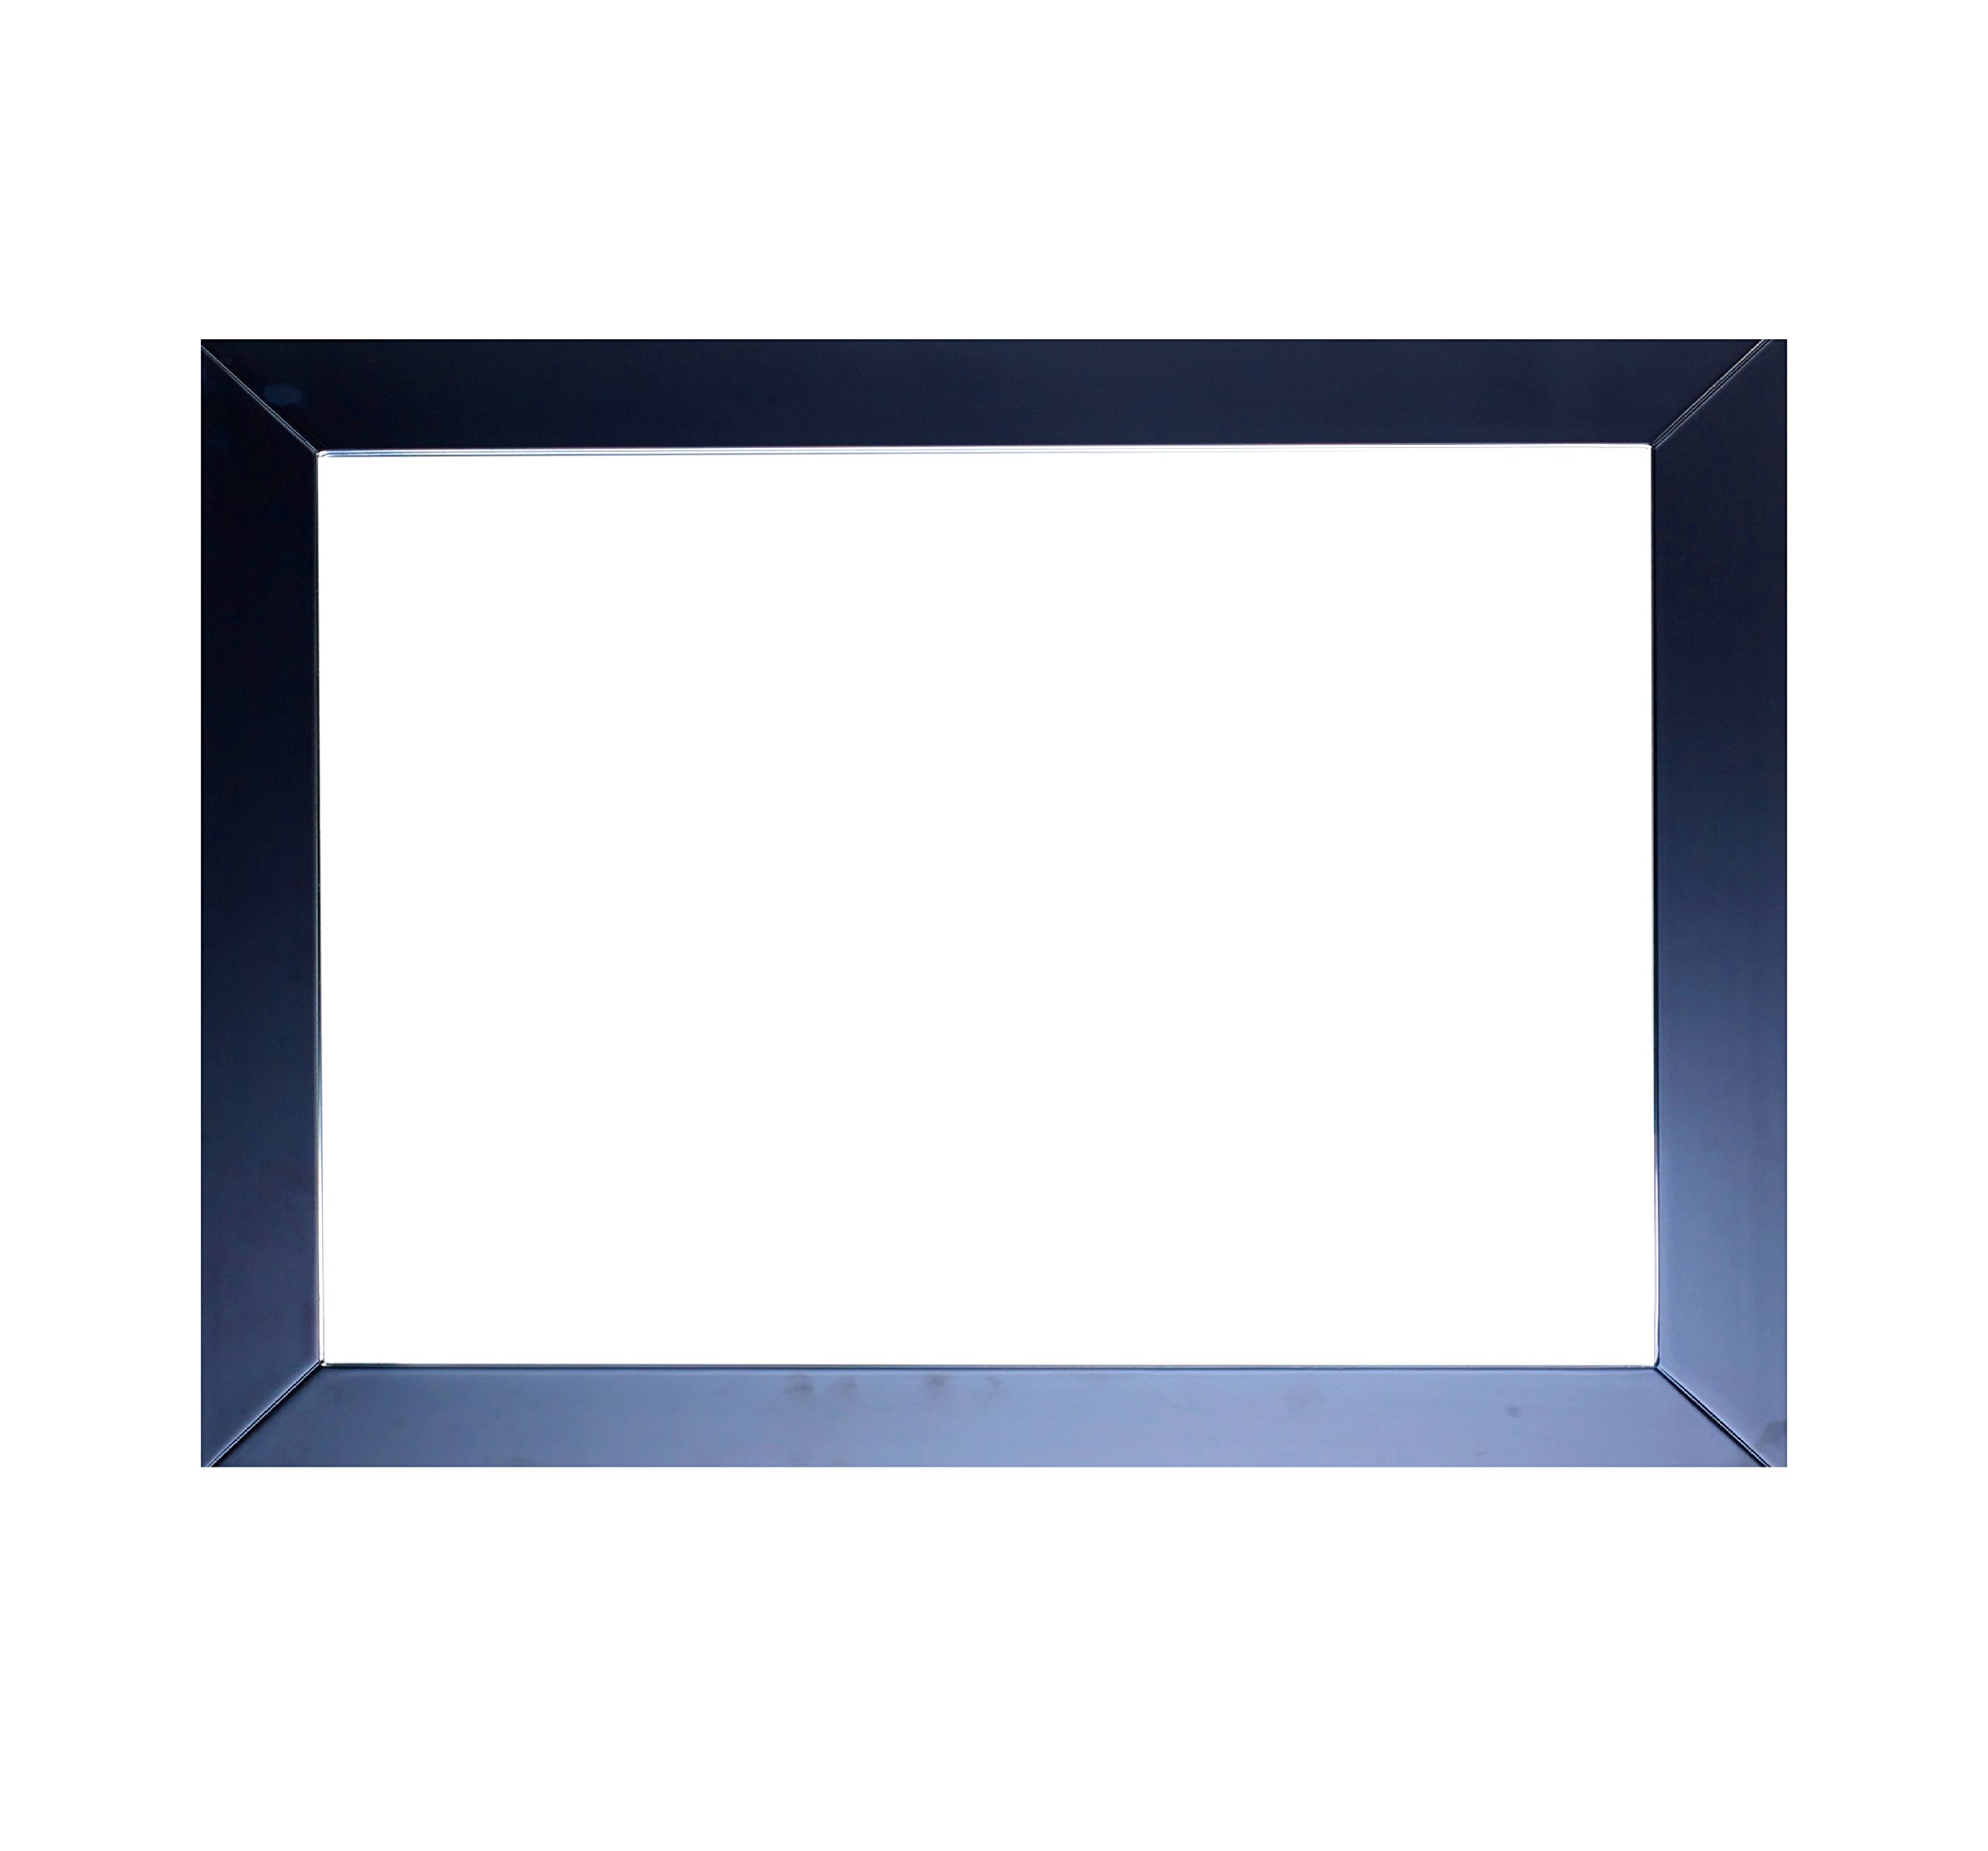 Eviva EVMR514-48X30-ES New York Bathroom Vanity Mirror Full Frame Espresso 48X31 Wall Mount Combination by Eviva